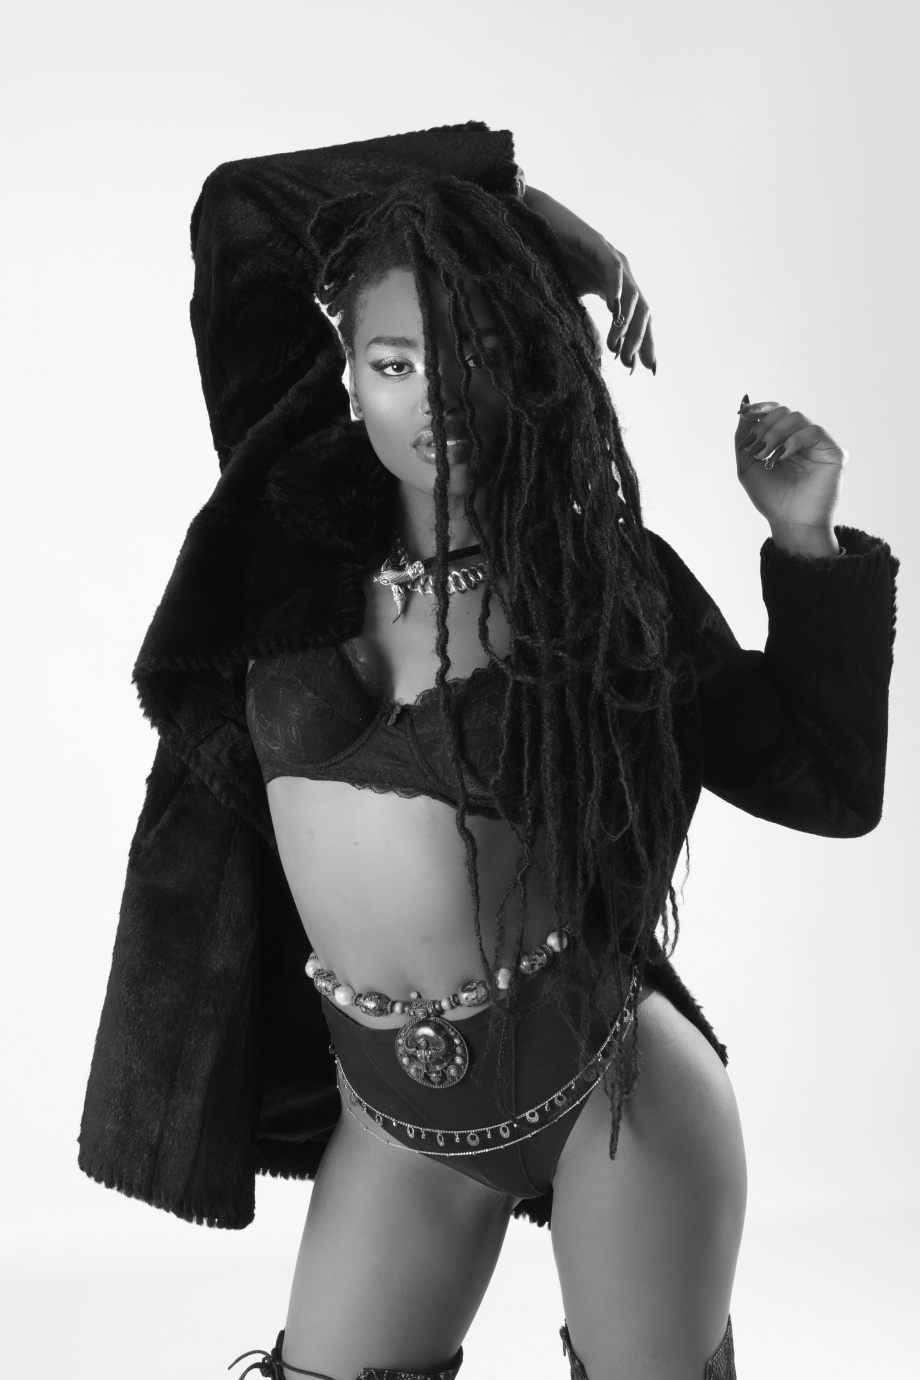 minnie marley, singer, soul, alternative, tattoos, glamour, studio, lingerie, black and white